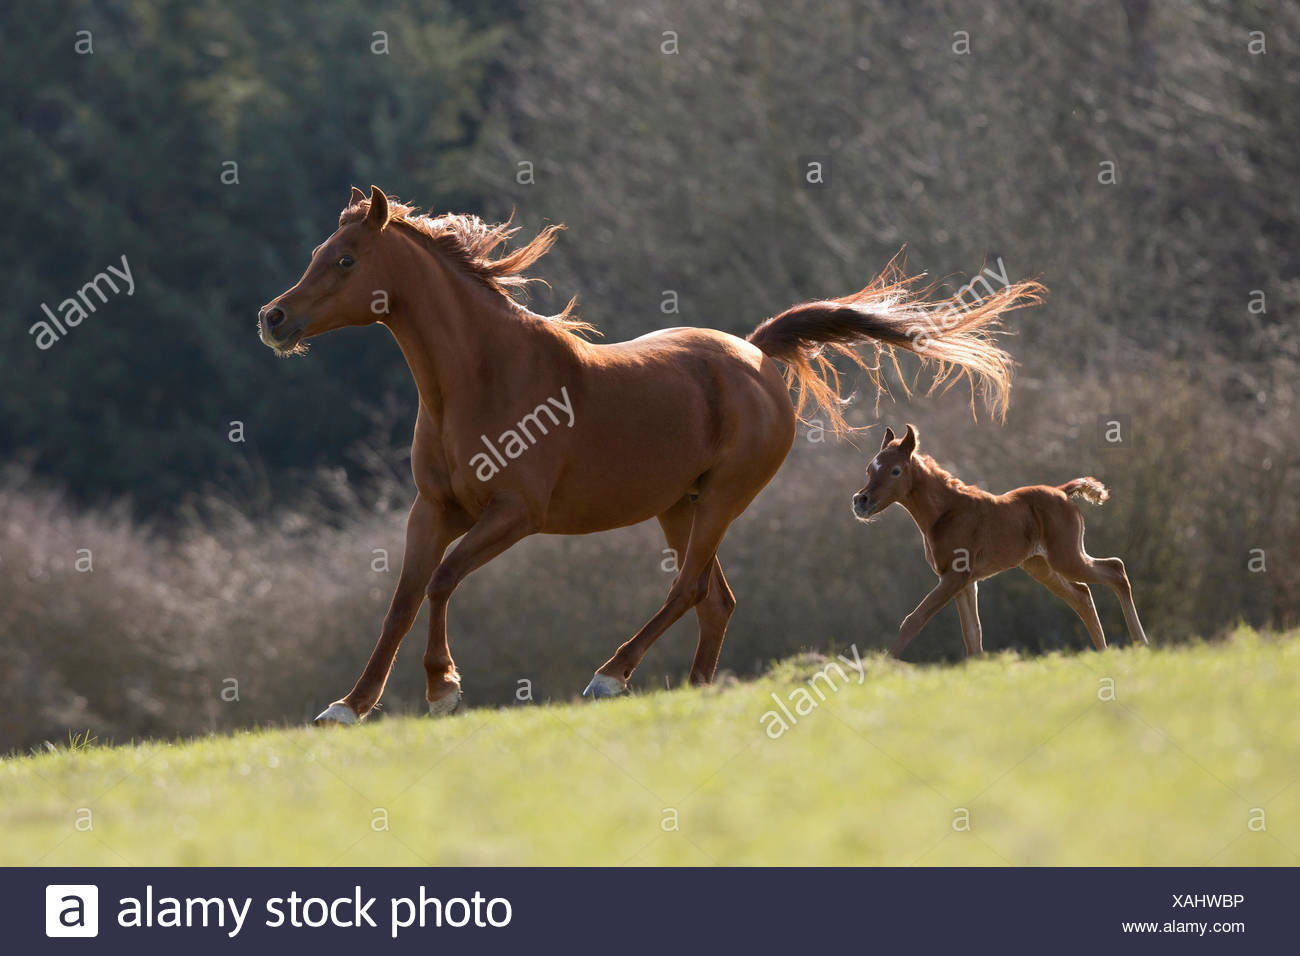 Brown Arabian mare with colt galloping - Stock Image